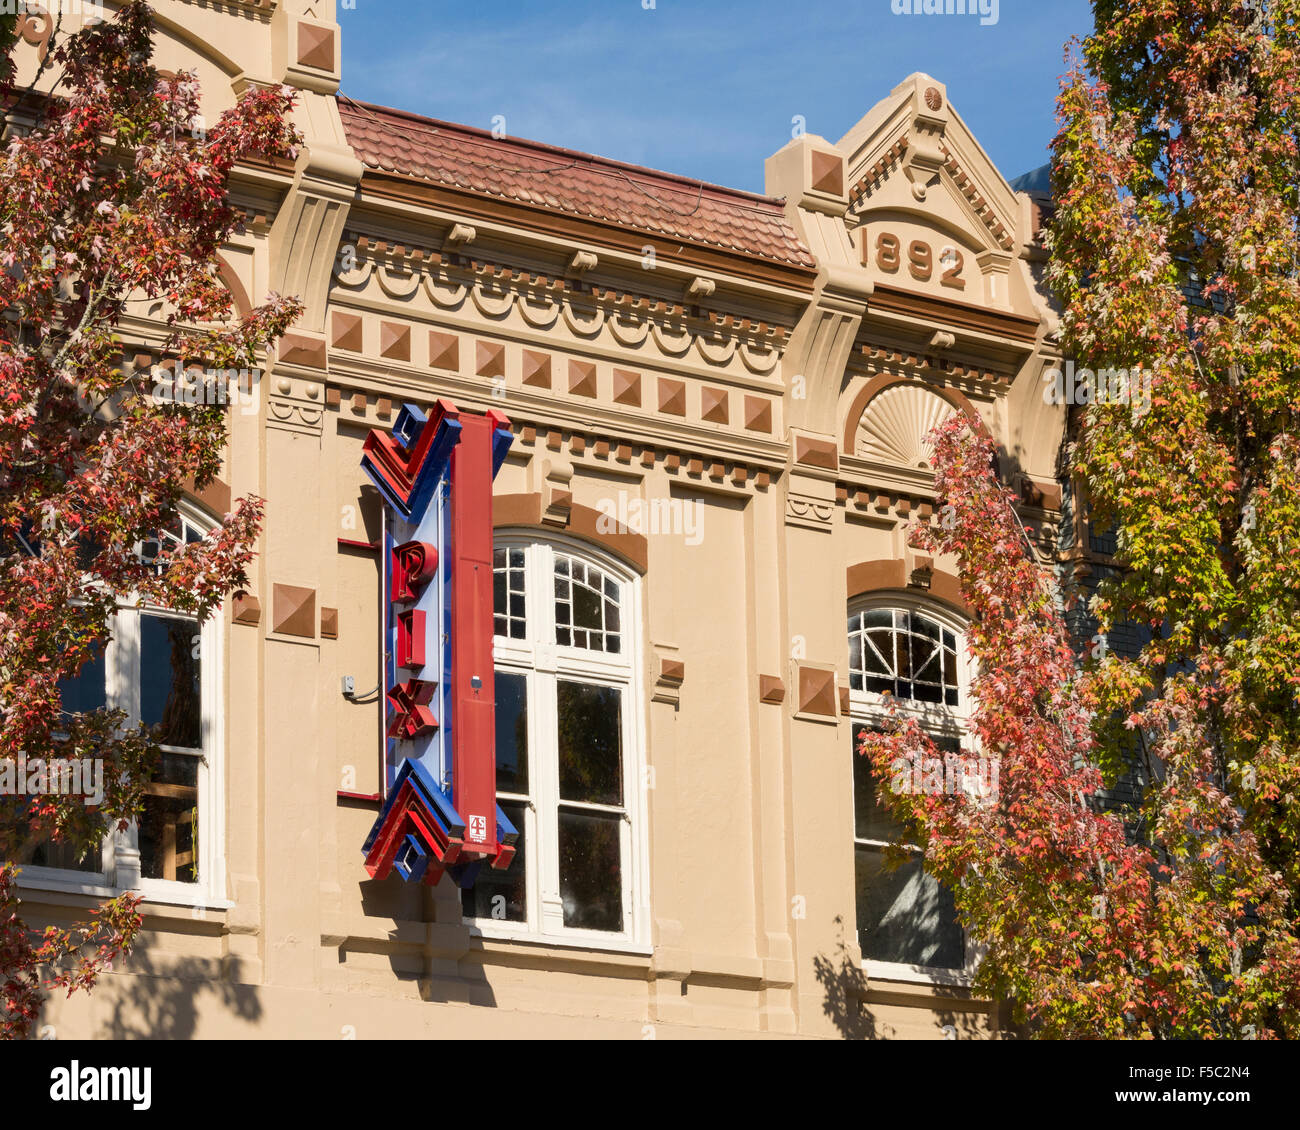 The Pix Theatre building in the downtown Historic District of Albany, Oregon. - Stock Image